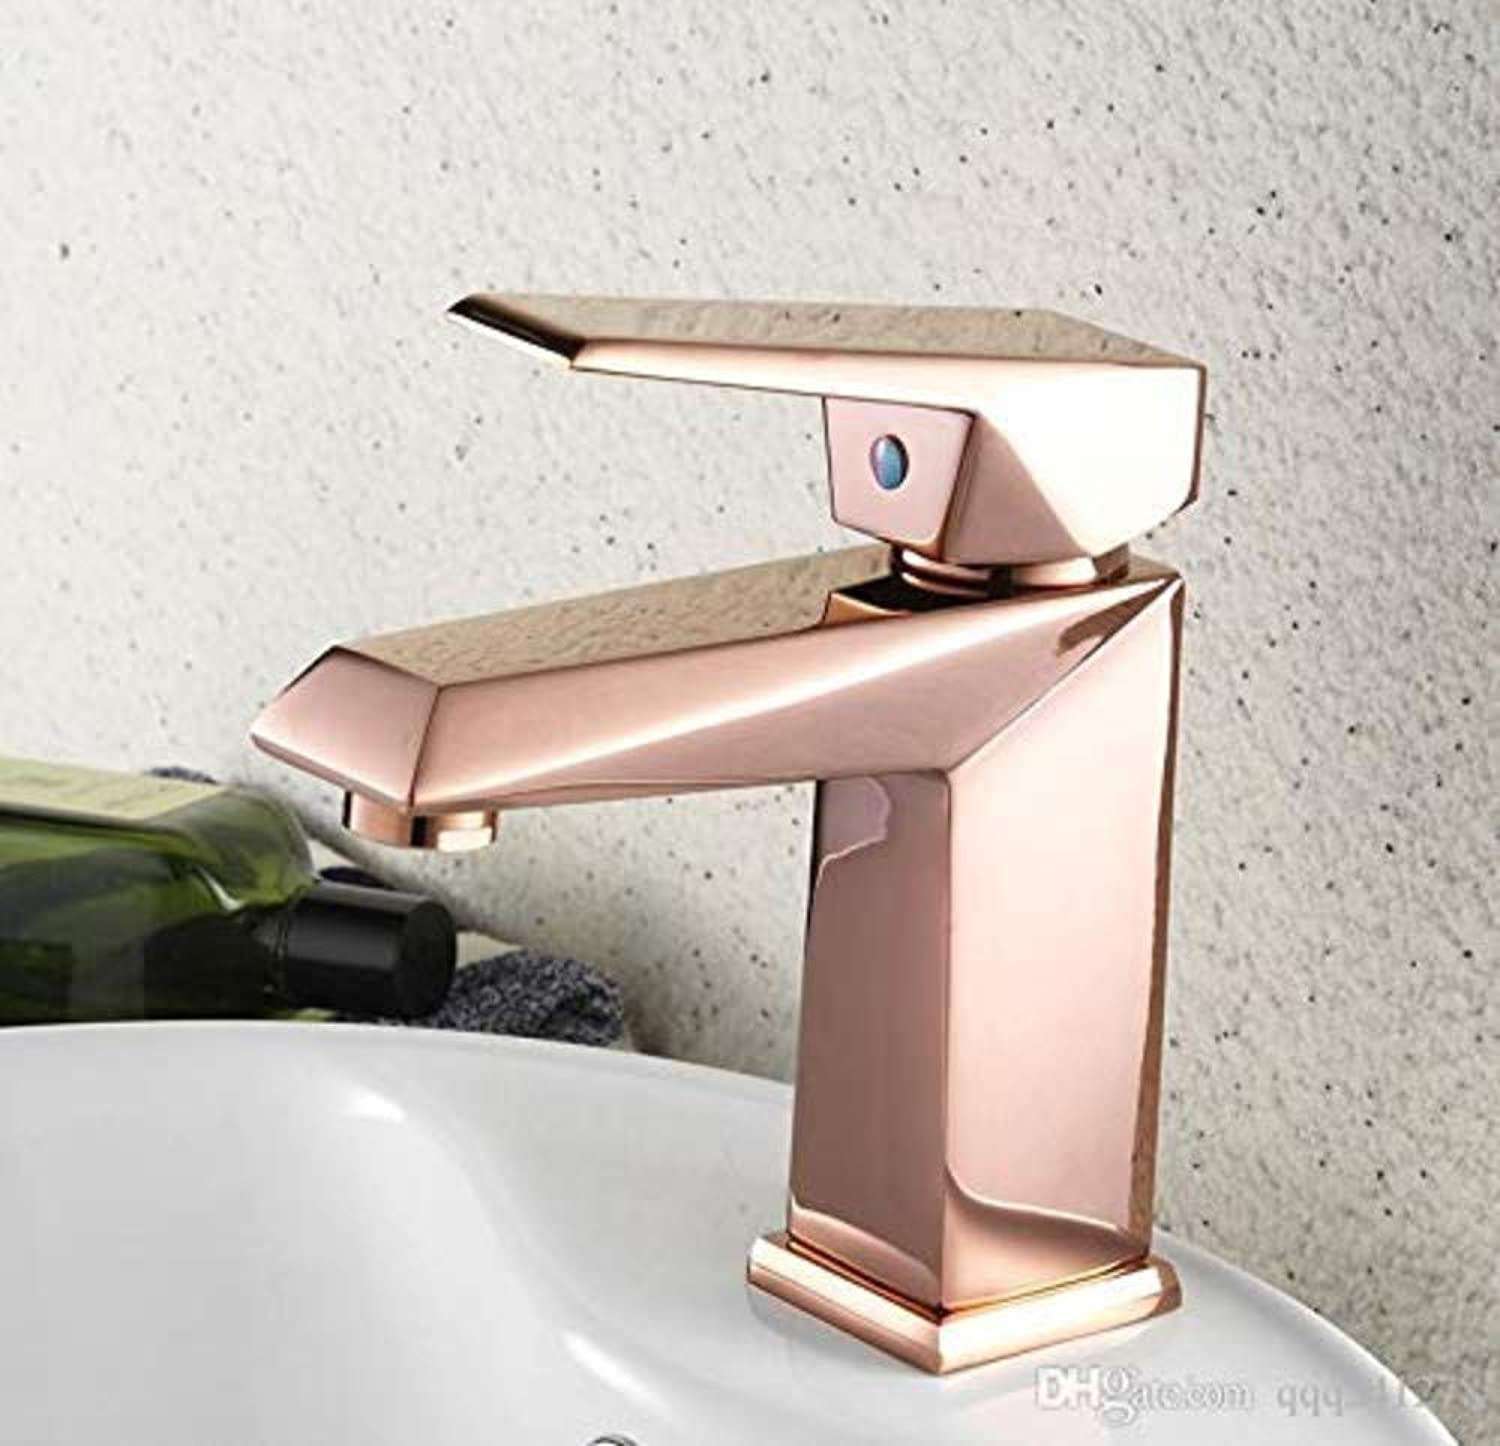 360° redating Faucet Retro Faucet Bathroom Mini Stylish Elegant Sink Faucet Single Handle pink gold Sink Faucets